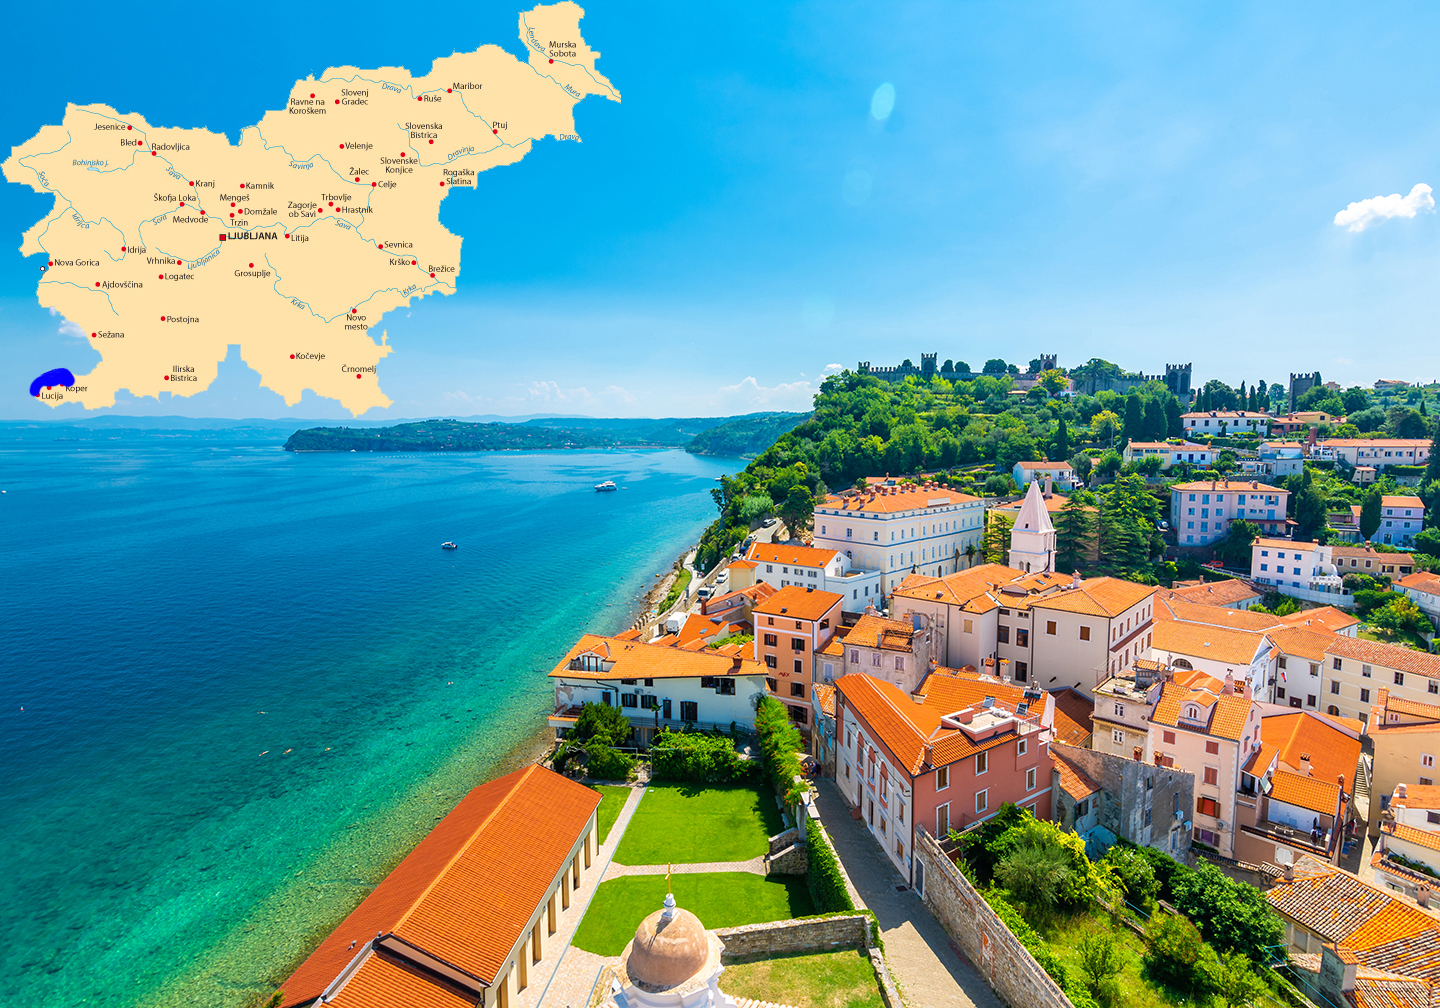 A view along Slovenia's Adriatic Coast, with red roofs, green sea, and blue sky. There is also a map at the top, showing where the scene is in Slovenia.